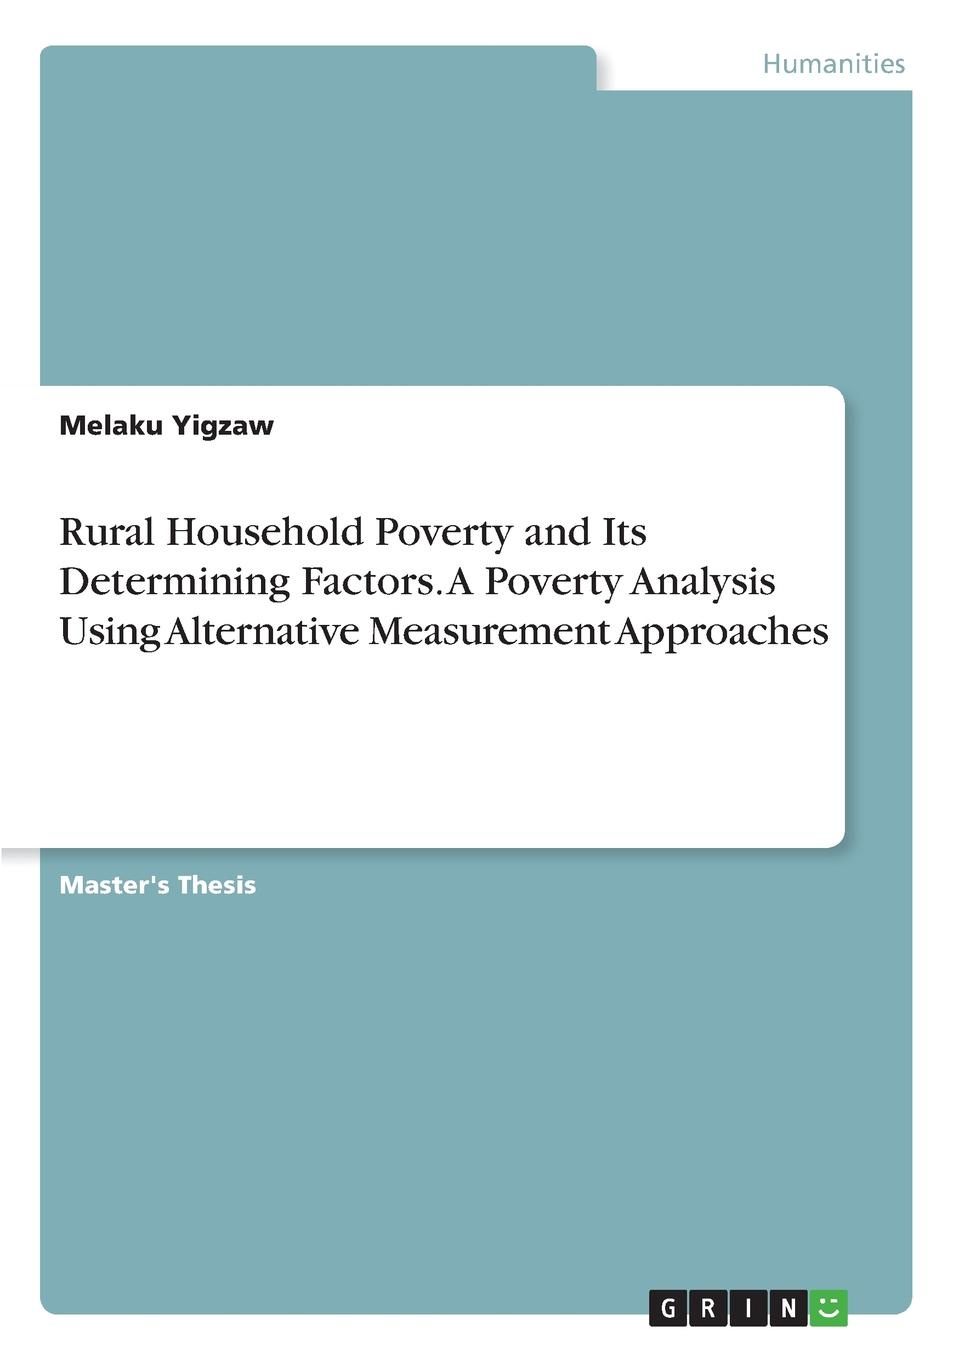 Melaku Yigzaw Rural Household Poverty and Its Determining Factors. A Poverty Analysis Using Alternative Measurement Approaches wilson uprooting poverty – the south african challenge